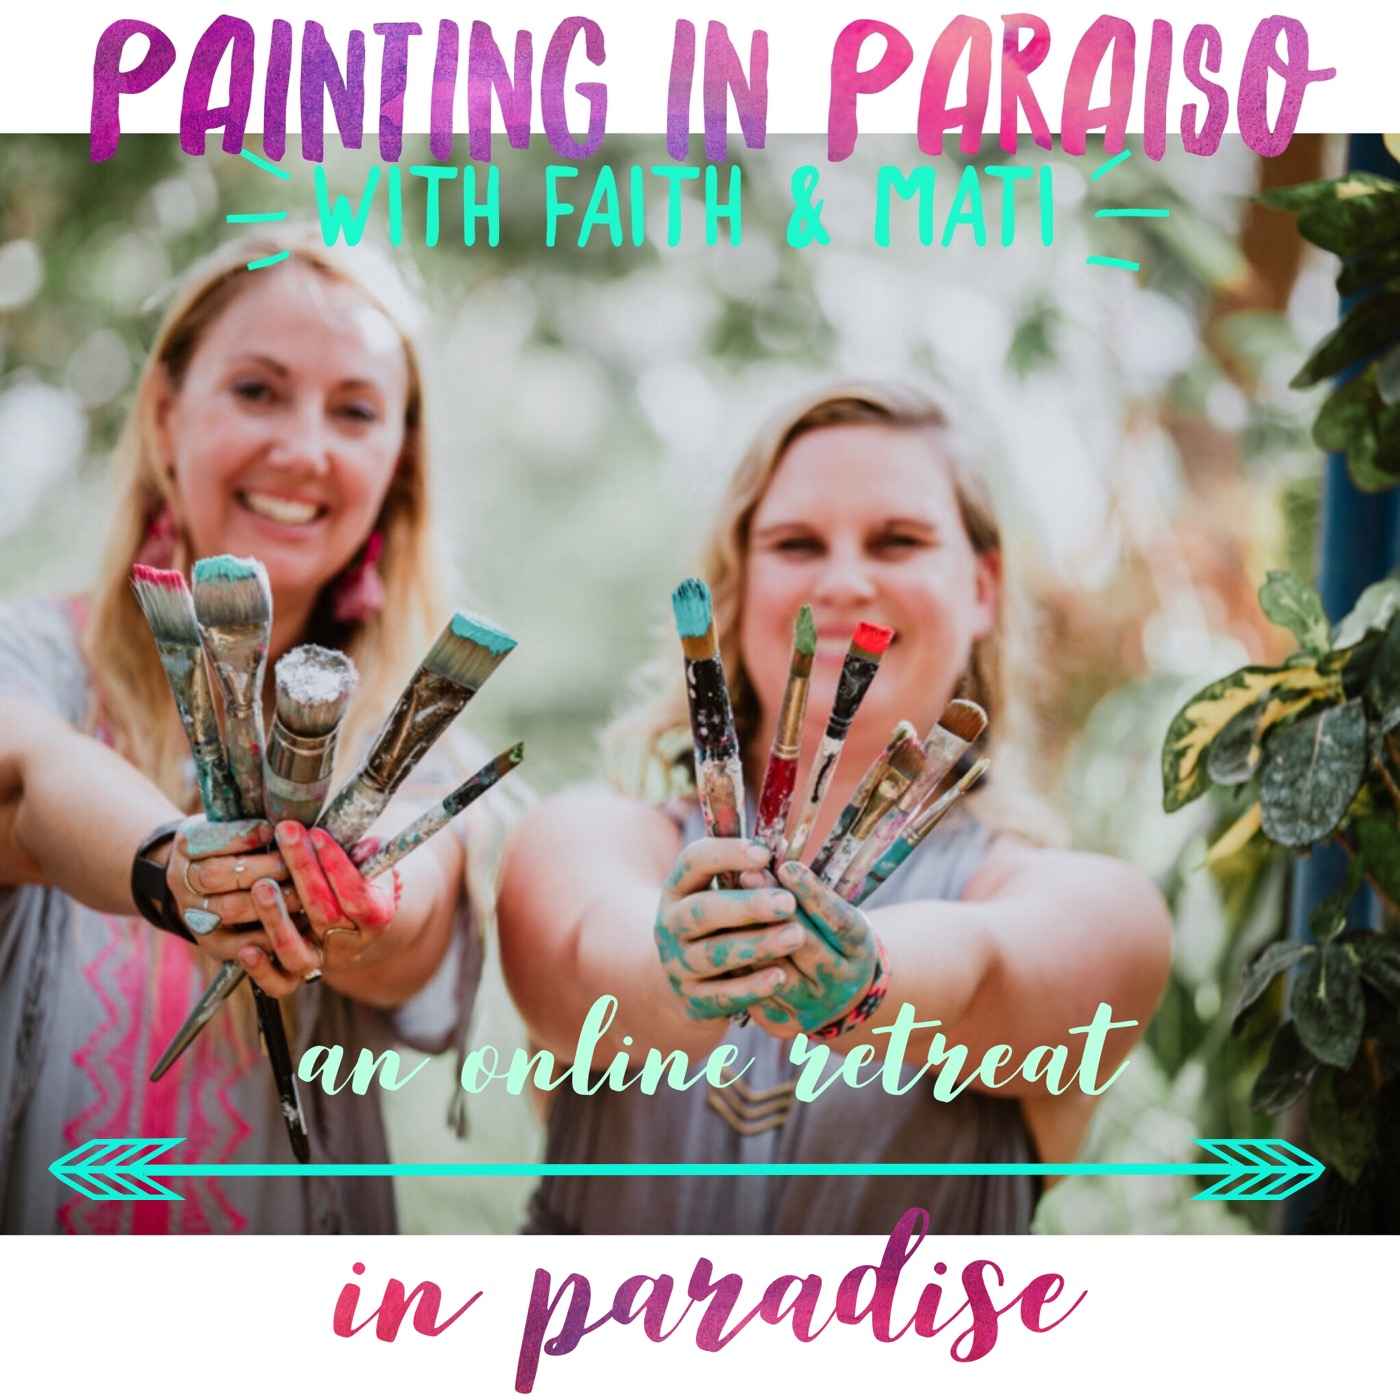 Painting in Paraiso: Our Online Retreat in Paradise